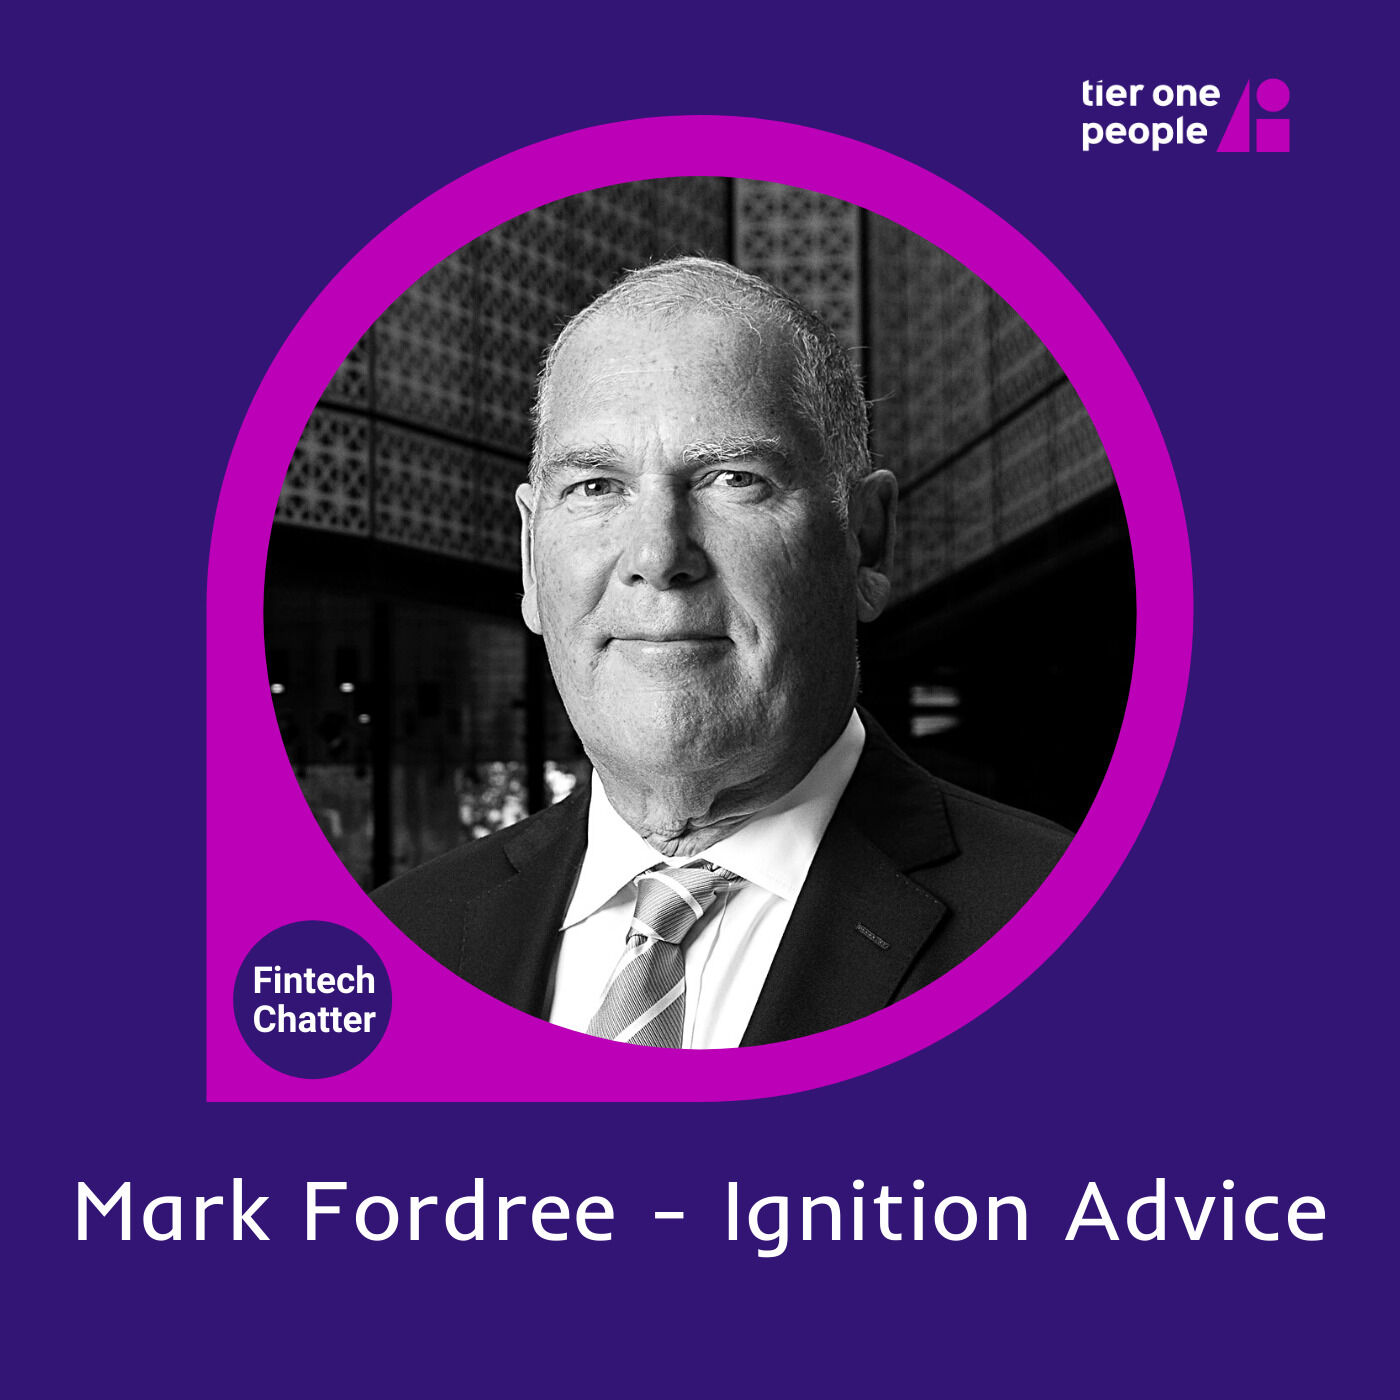 #74 Mark Fordree - Ignition Advice